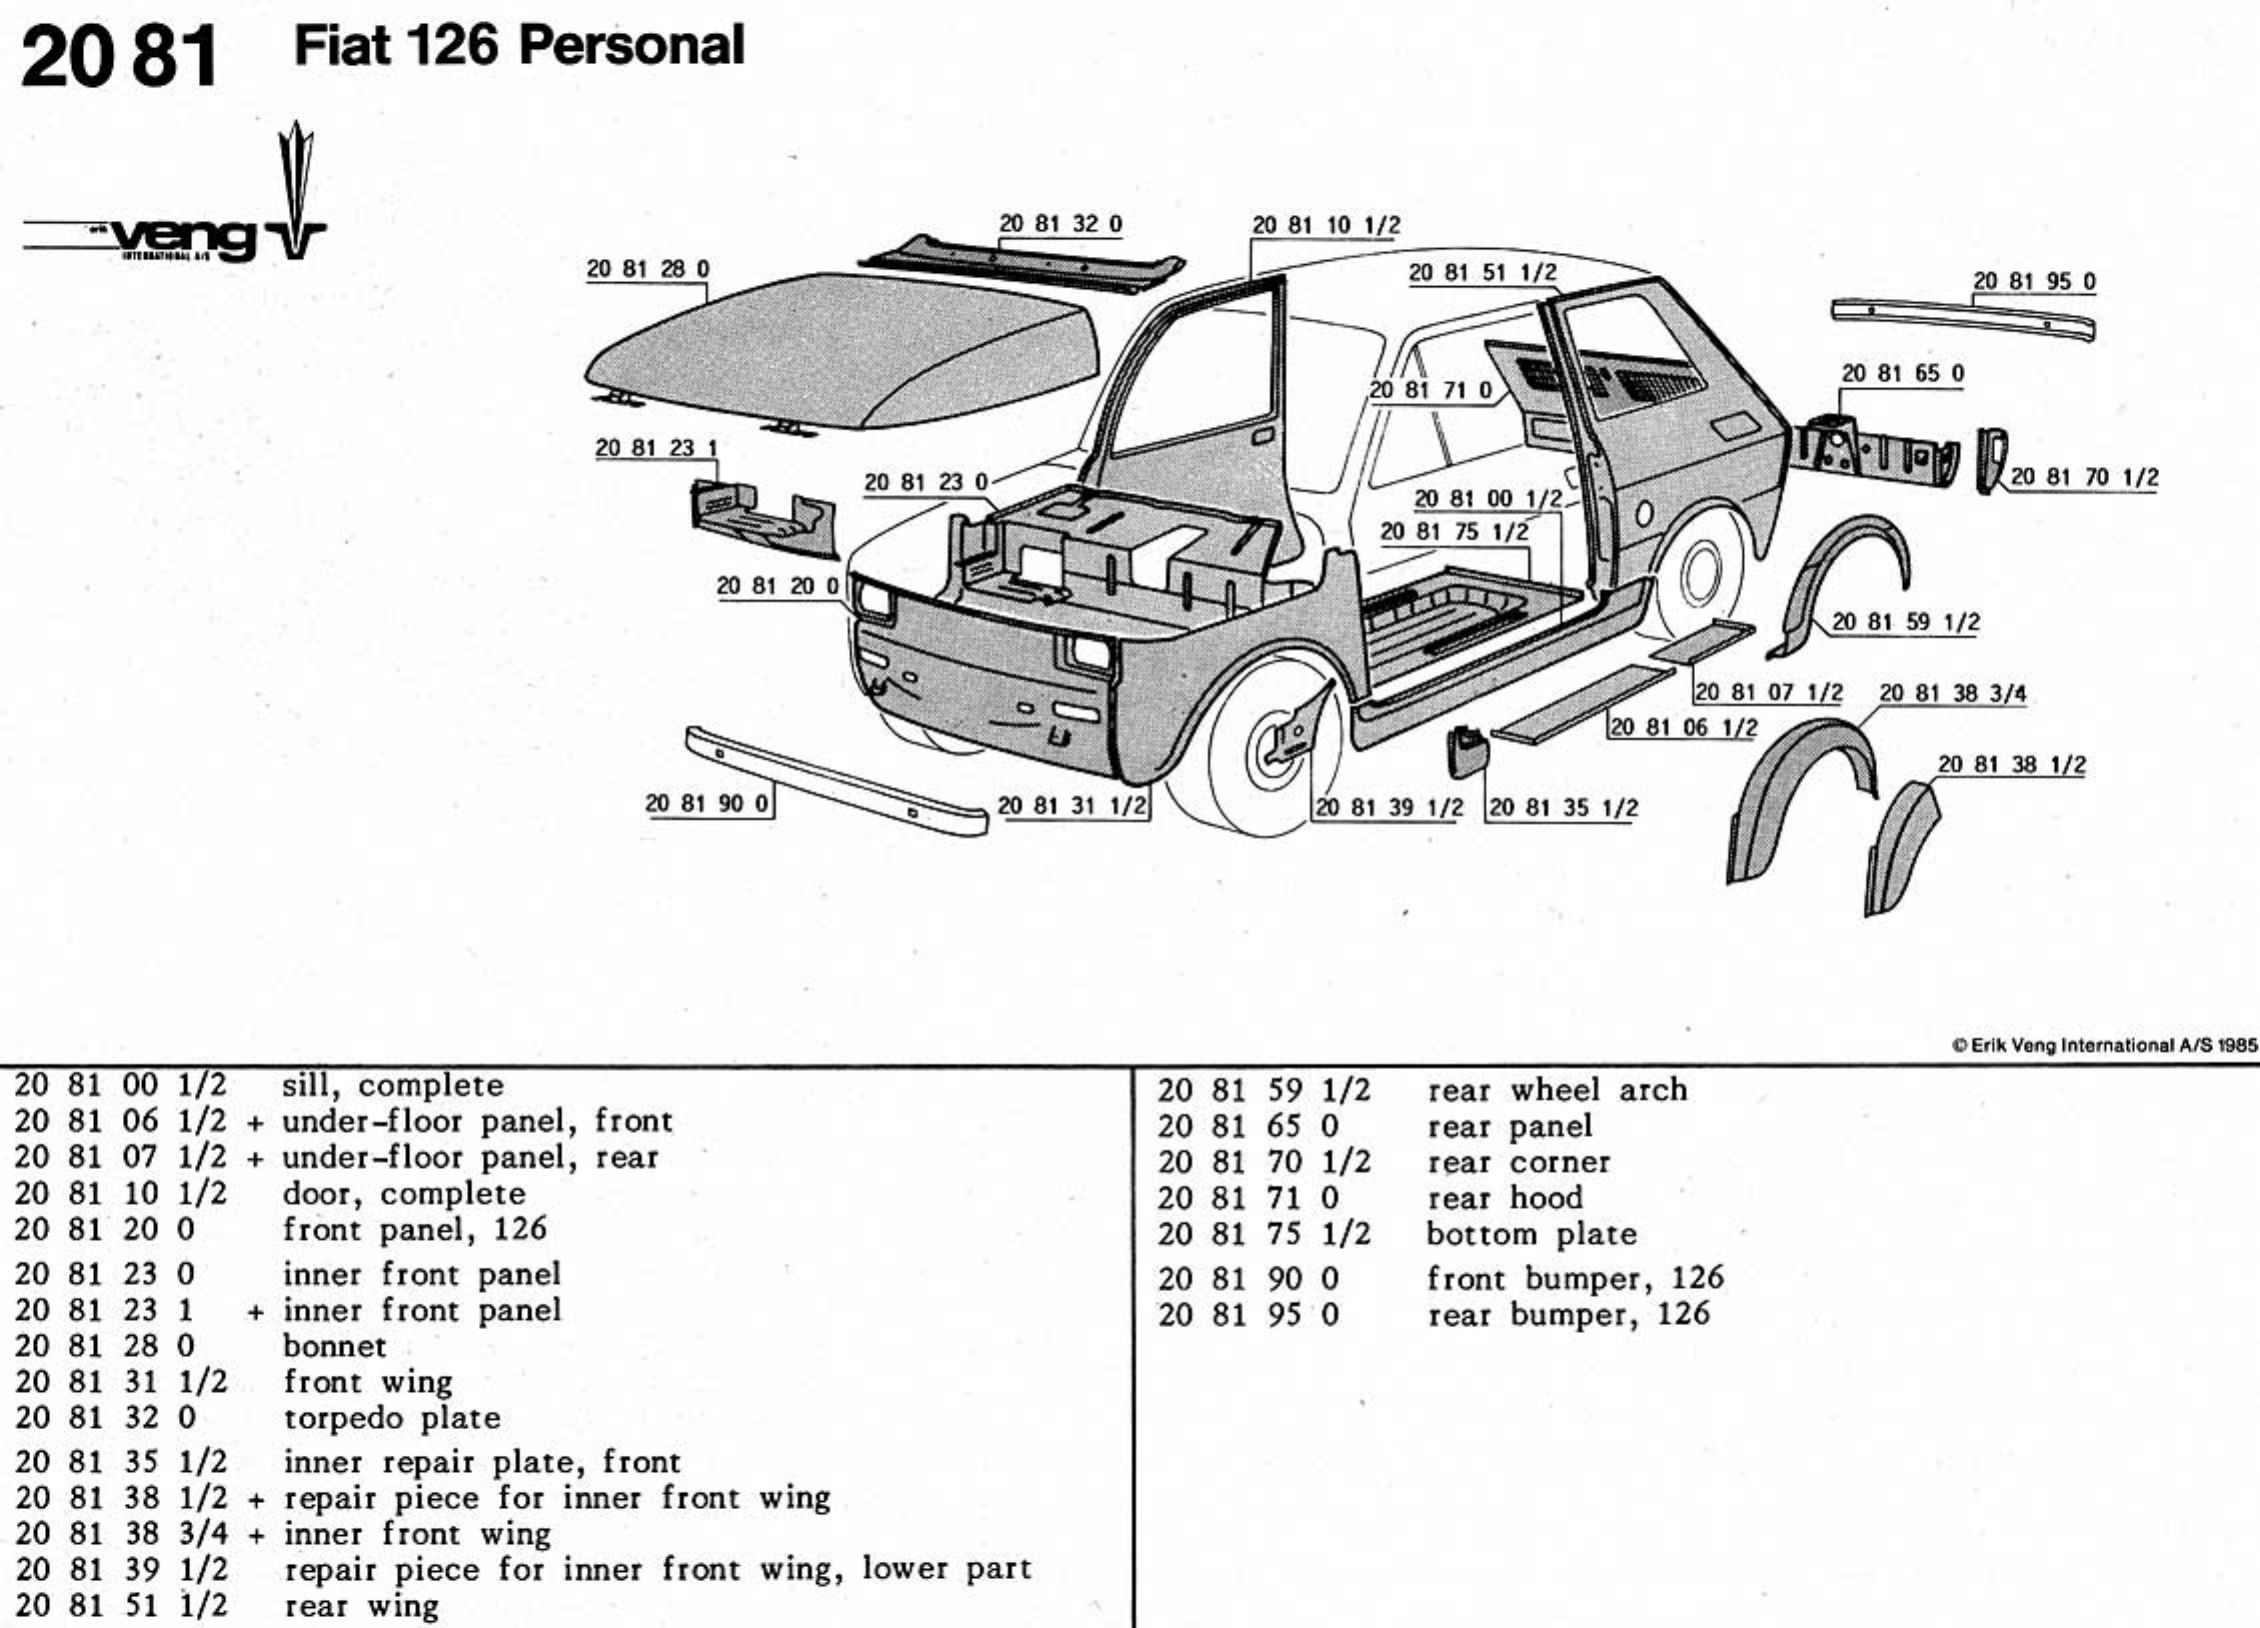 See our other Fiat 126 Manuals: